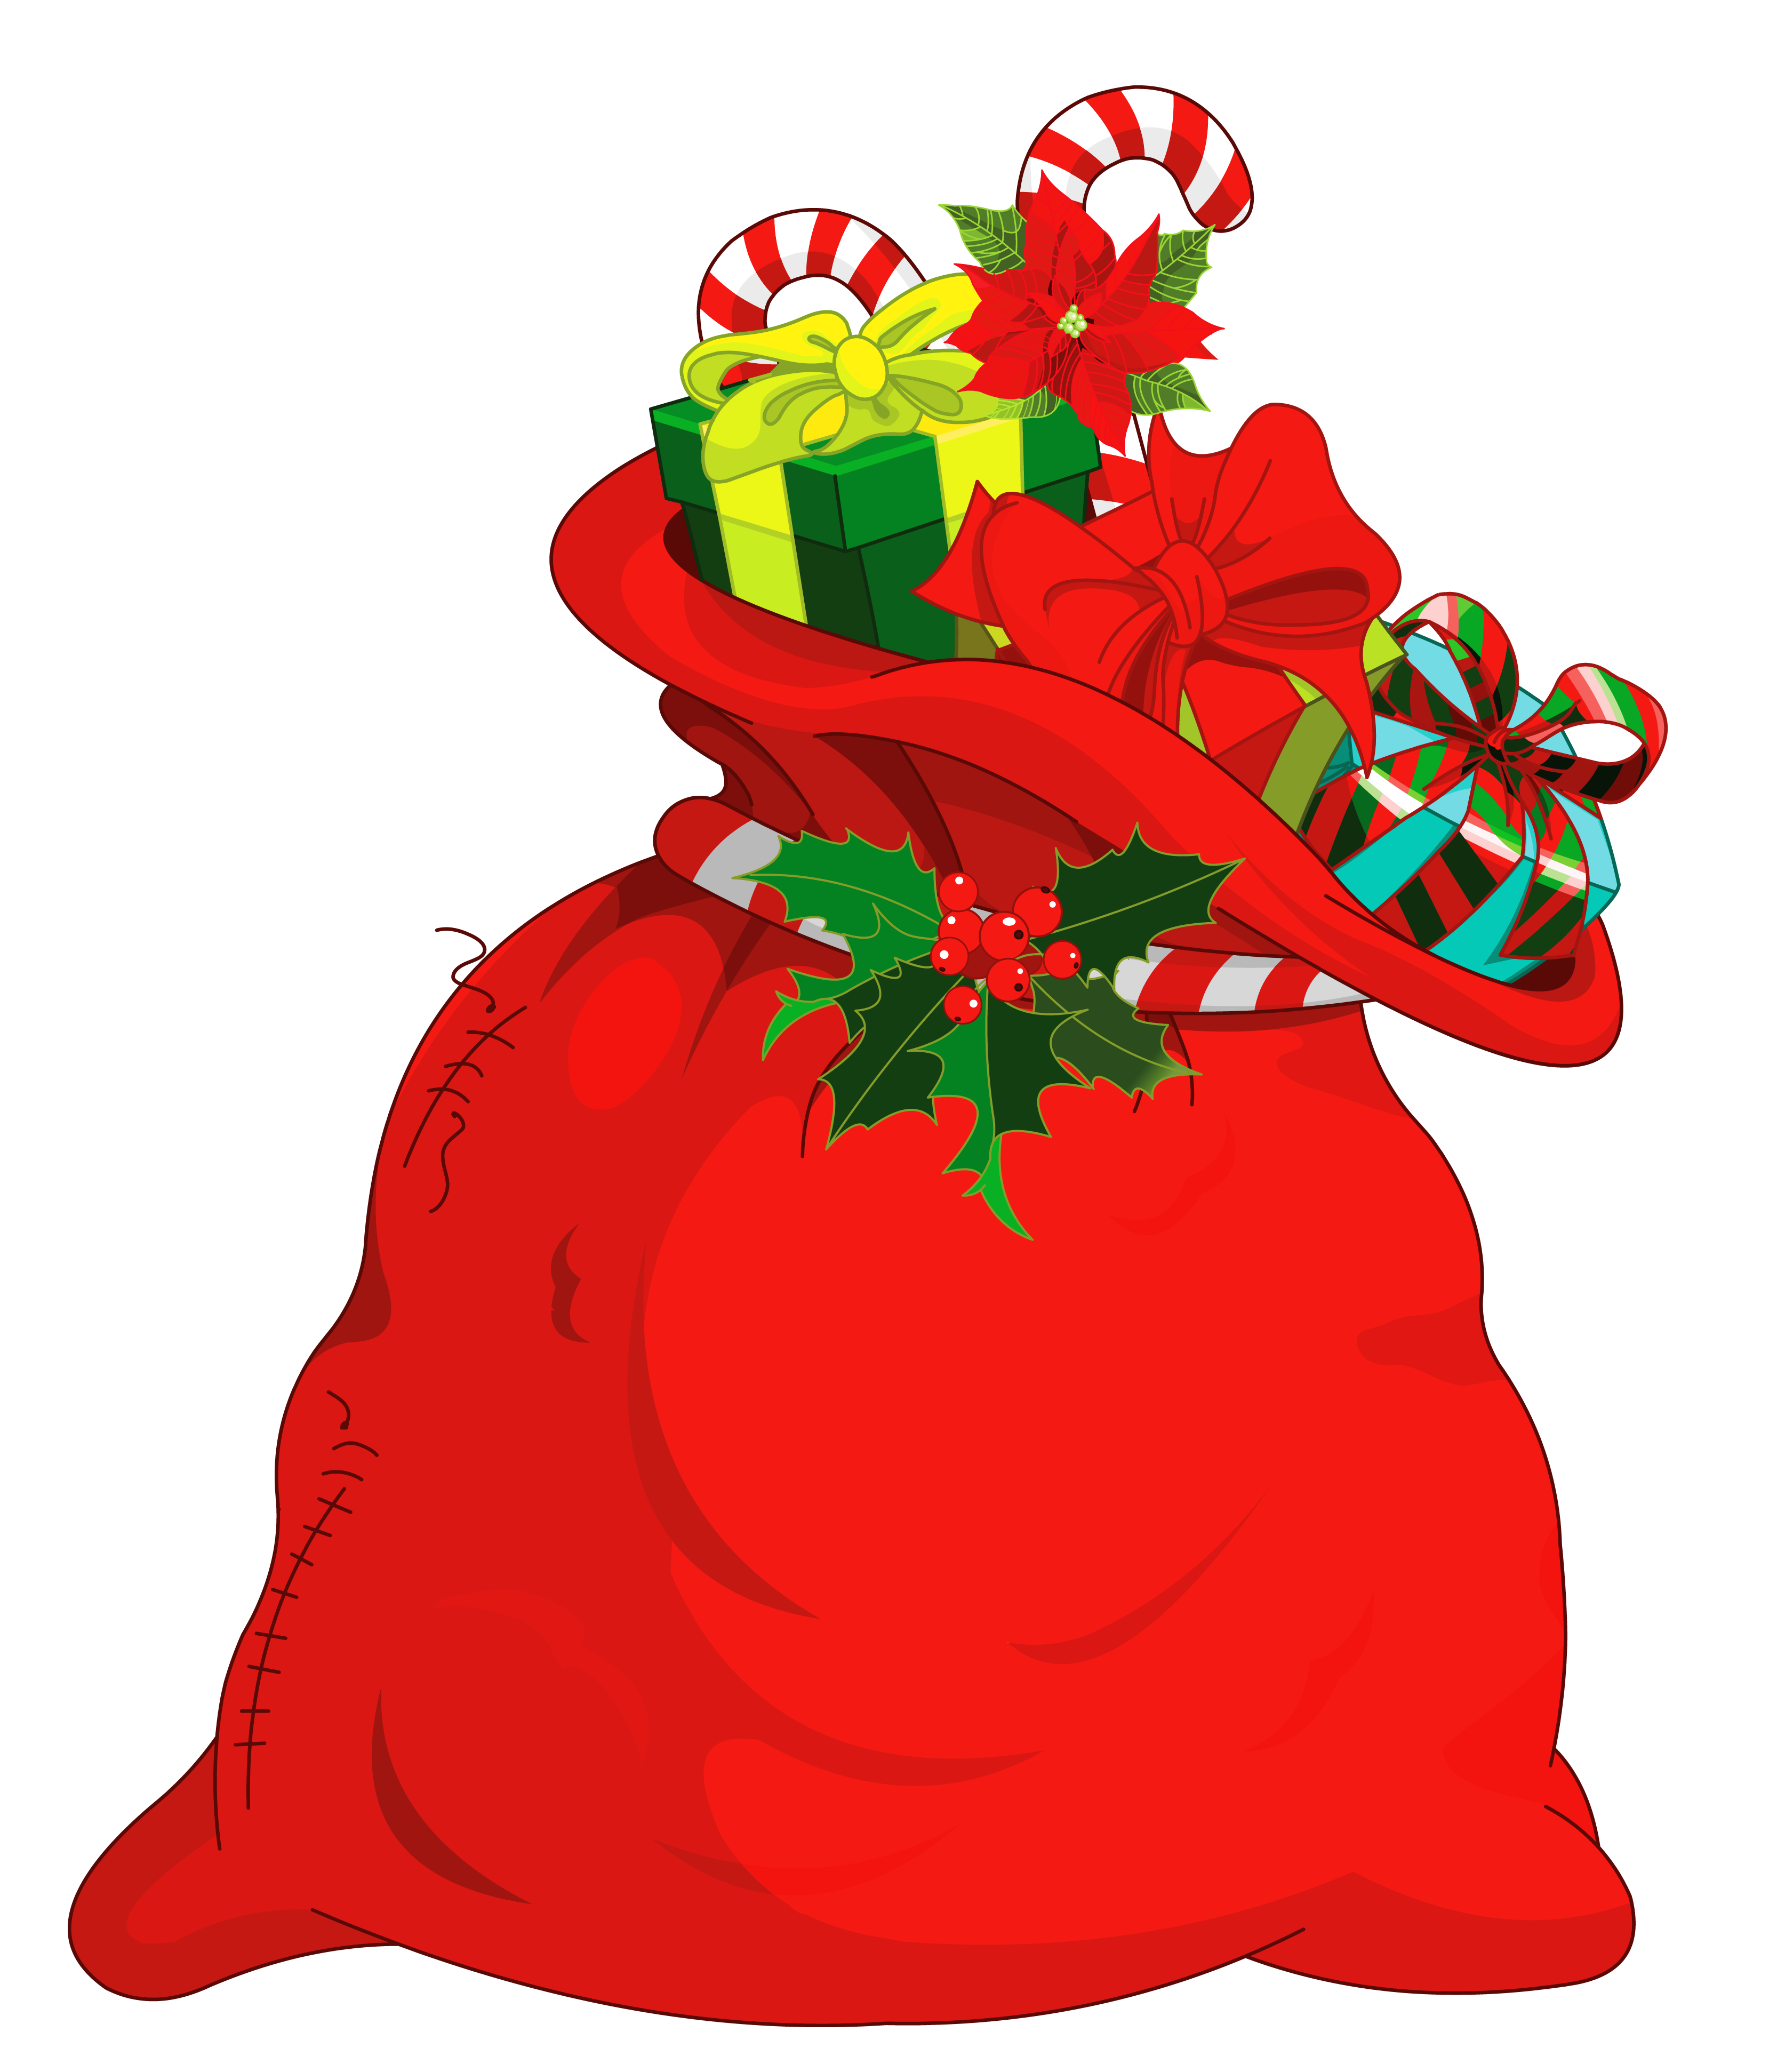 Santa bag png. Christmas picture gallery yopriceville